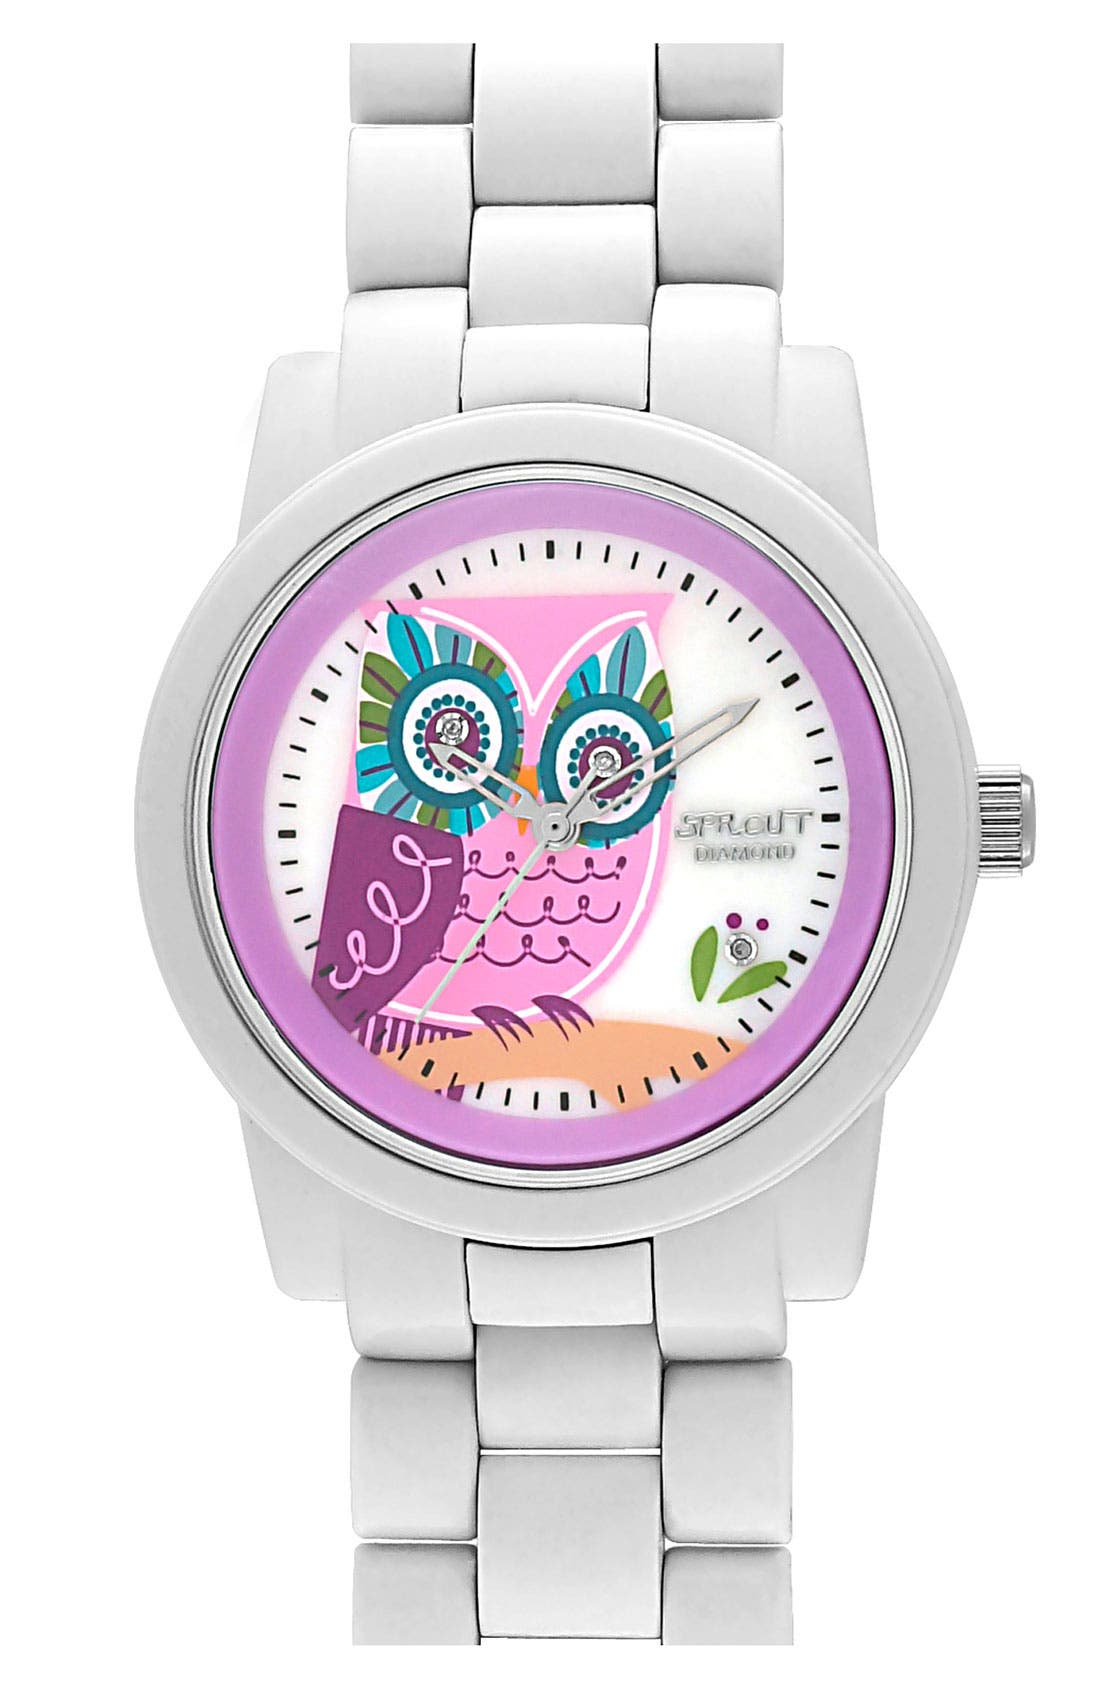 Main Image - SPROUT™ Watches Diamond Owl Watch, 37mm